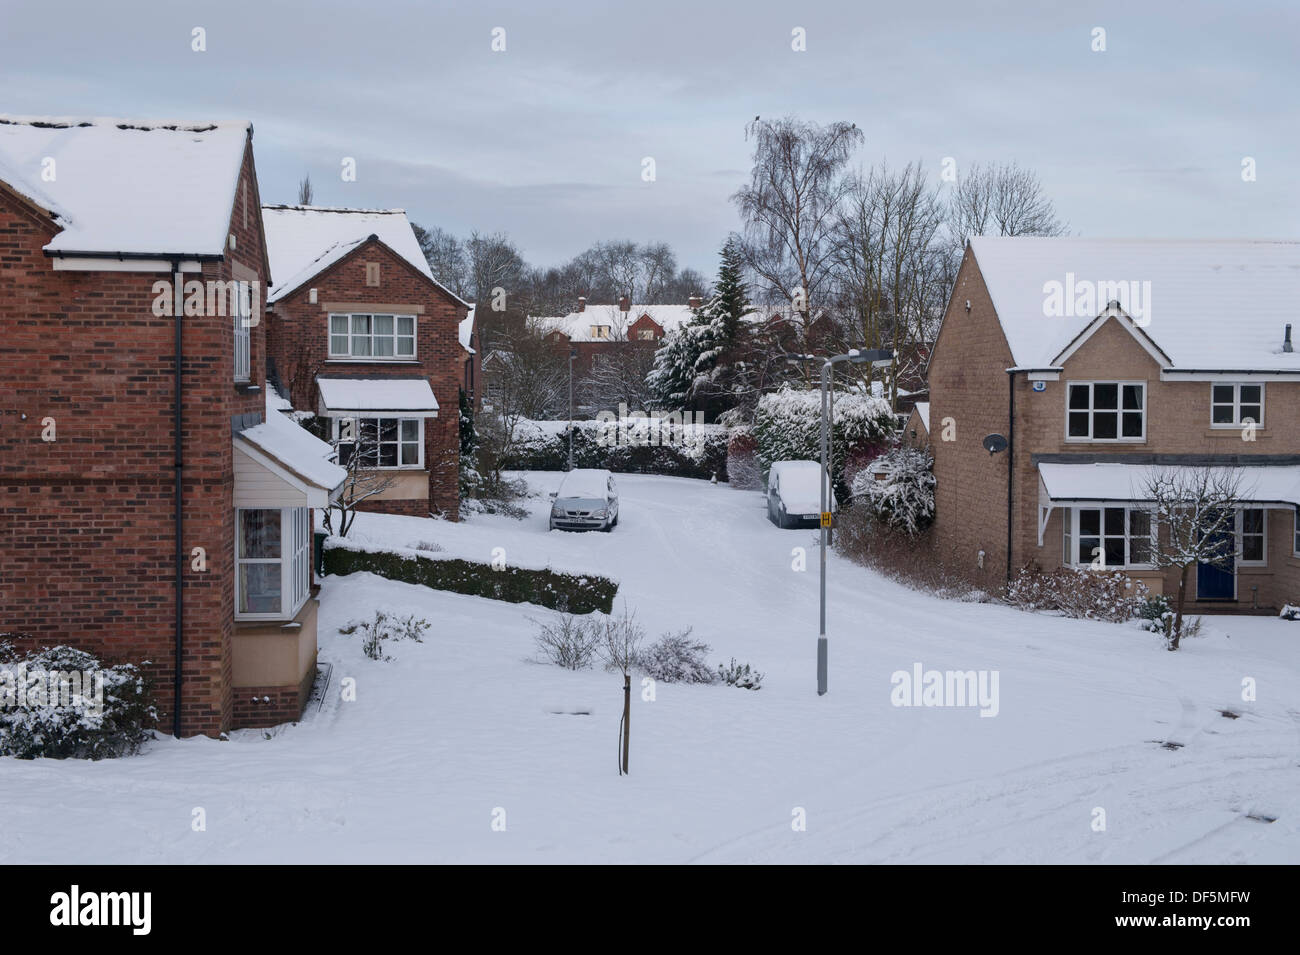 High view over residential area with modern detached houses in a quiet, snow-covered cul-de-sac on cold winter day Stock Photo